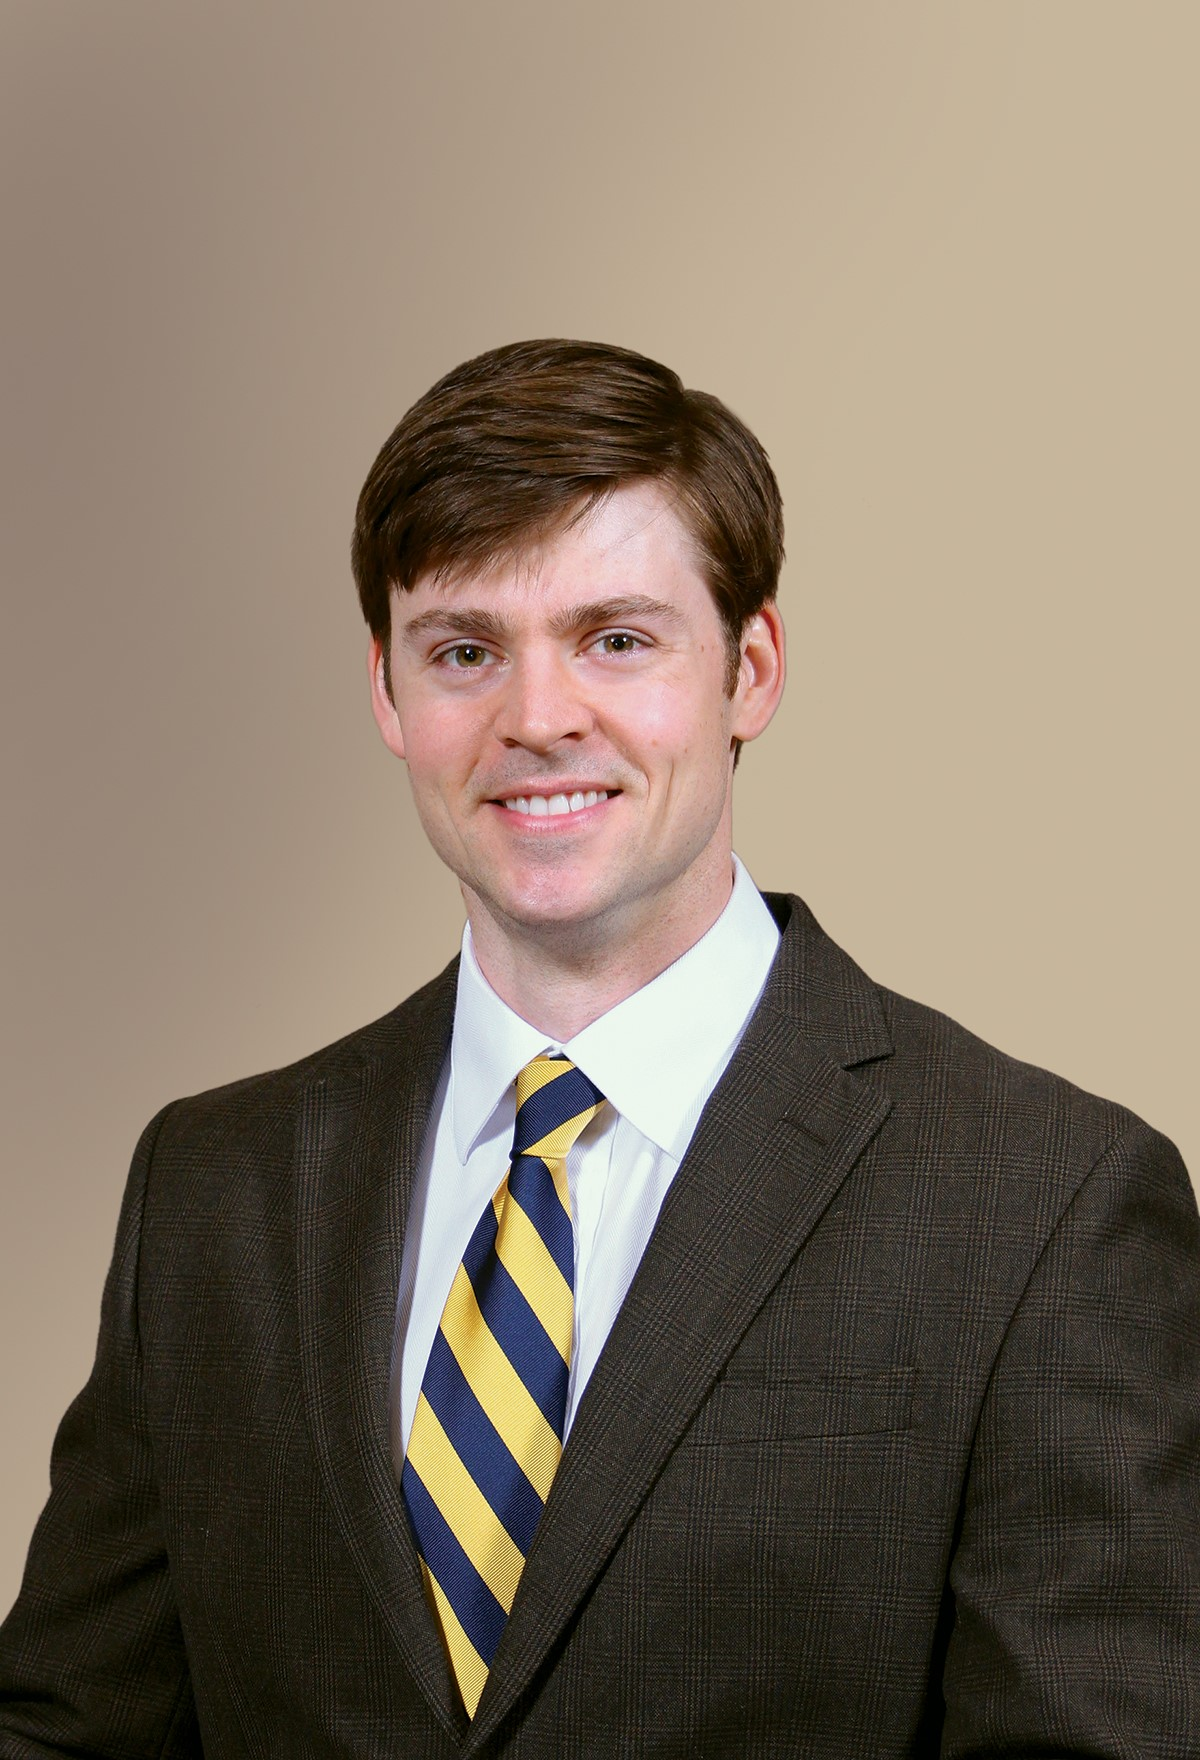 Andrews Sports Medicine in Trussville welcomes new physician